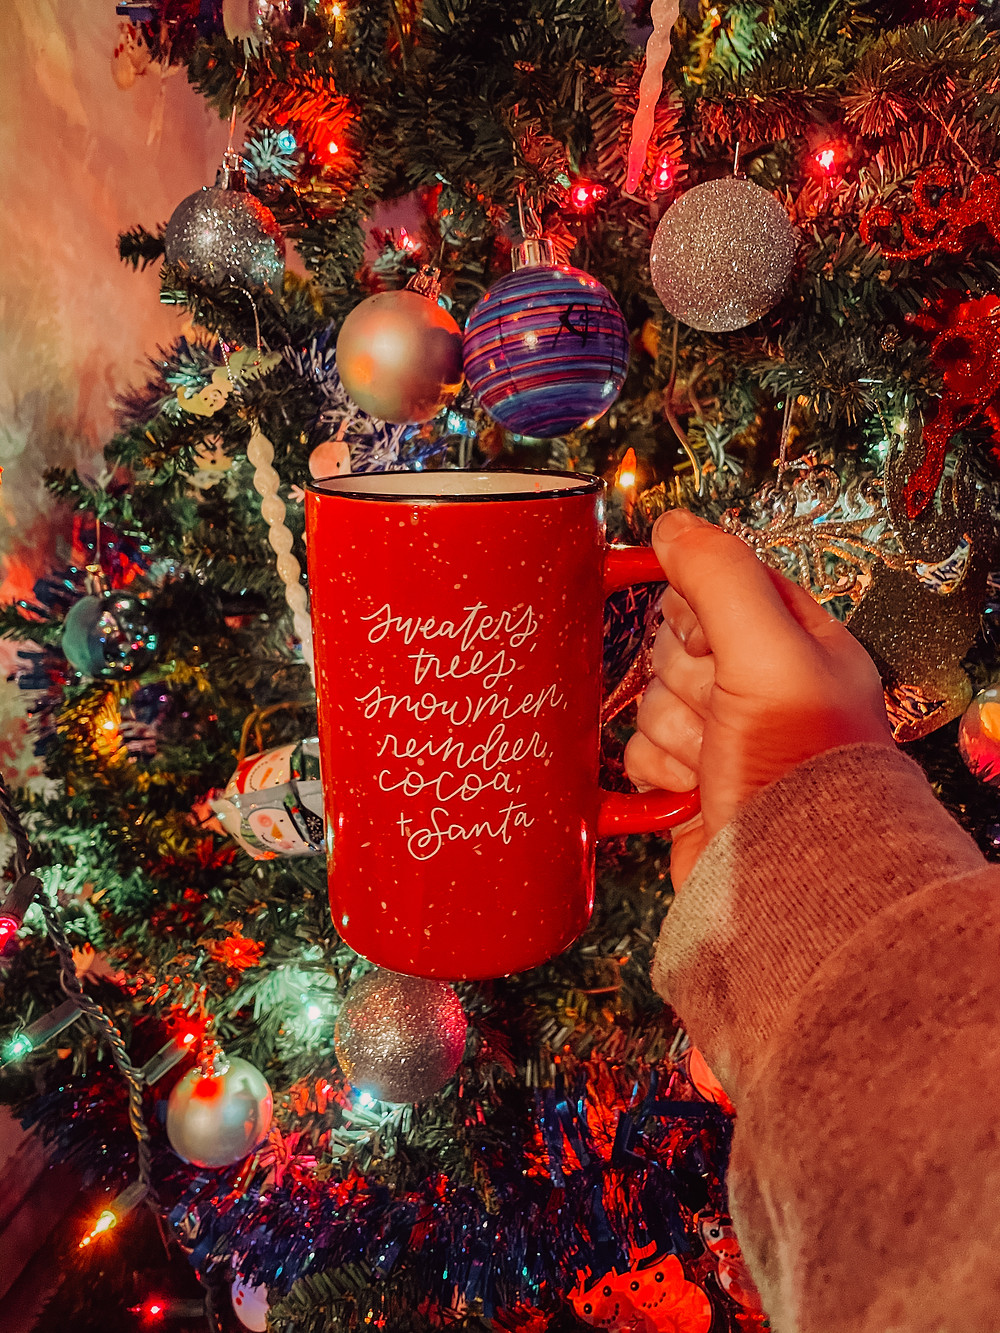 """""""Christmas things"""" mug reading sweaters, trees, snowmen, reindeer, cocoa + Santa in front of a lit and decorated Christmas tree."""